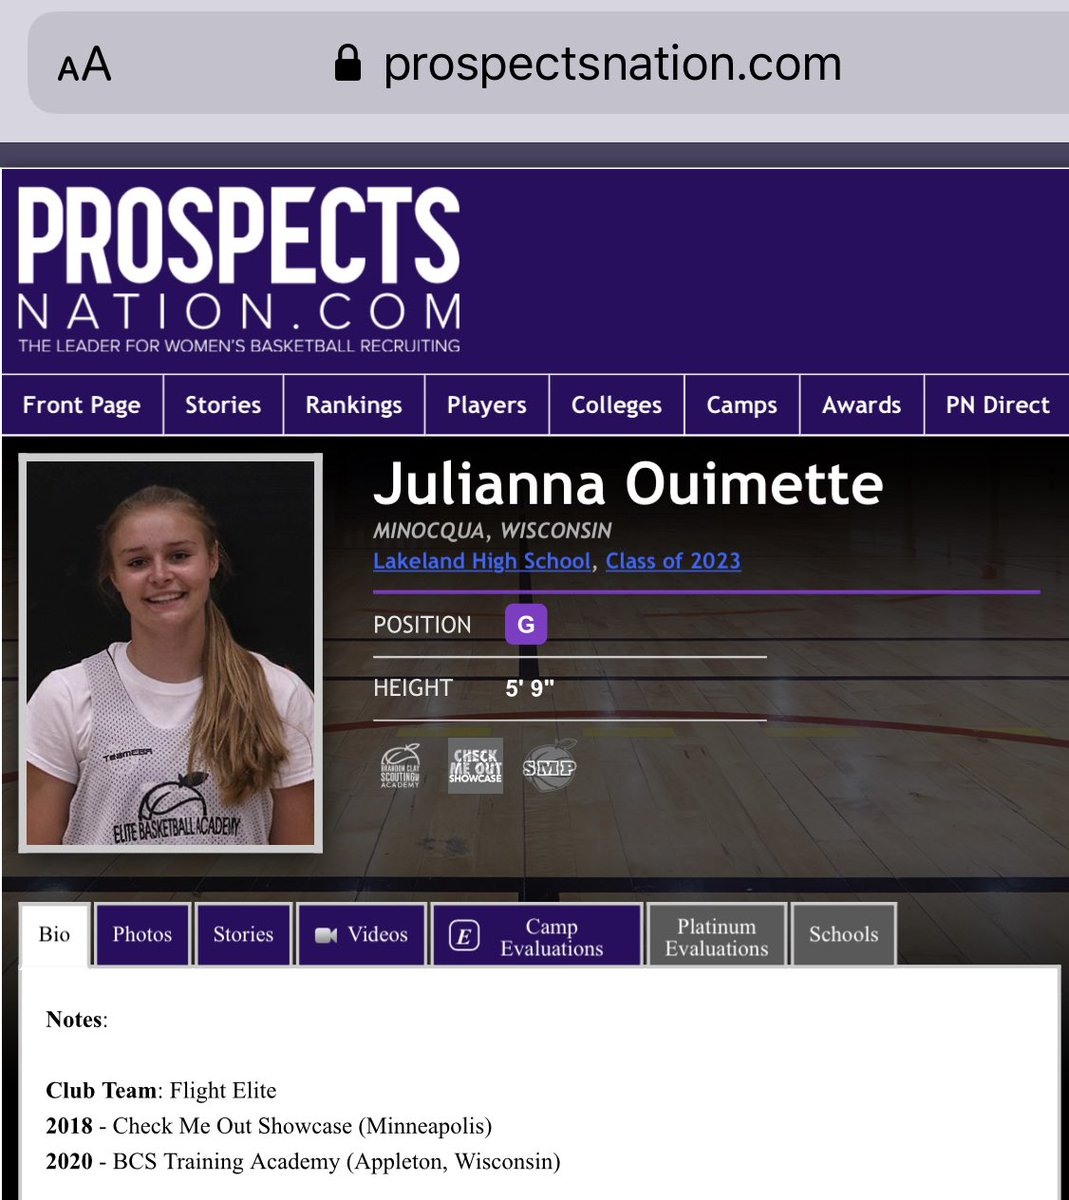 Brandon Clay College Recruiting Profile: #BClayRecruiting x @bclayrecruiting  '23 G Julianna Ouimette (WI) has our staff's full attention. Smooth backcourt option.  Creighton, Davidson & Tulsa are tracking her progress.  GET YOUR OWN RECRUITING PROFILE: https://t.co/tYNfZLbdO2 https://t.co/awjwhwY0mc